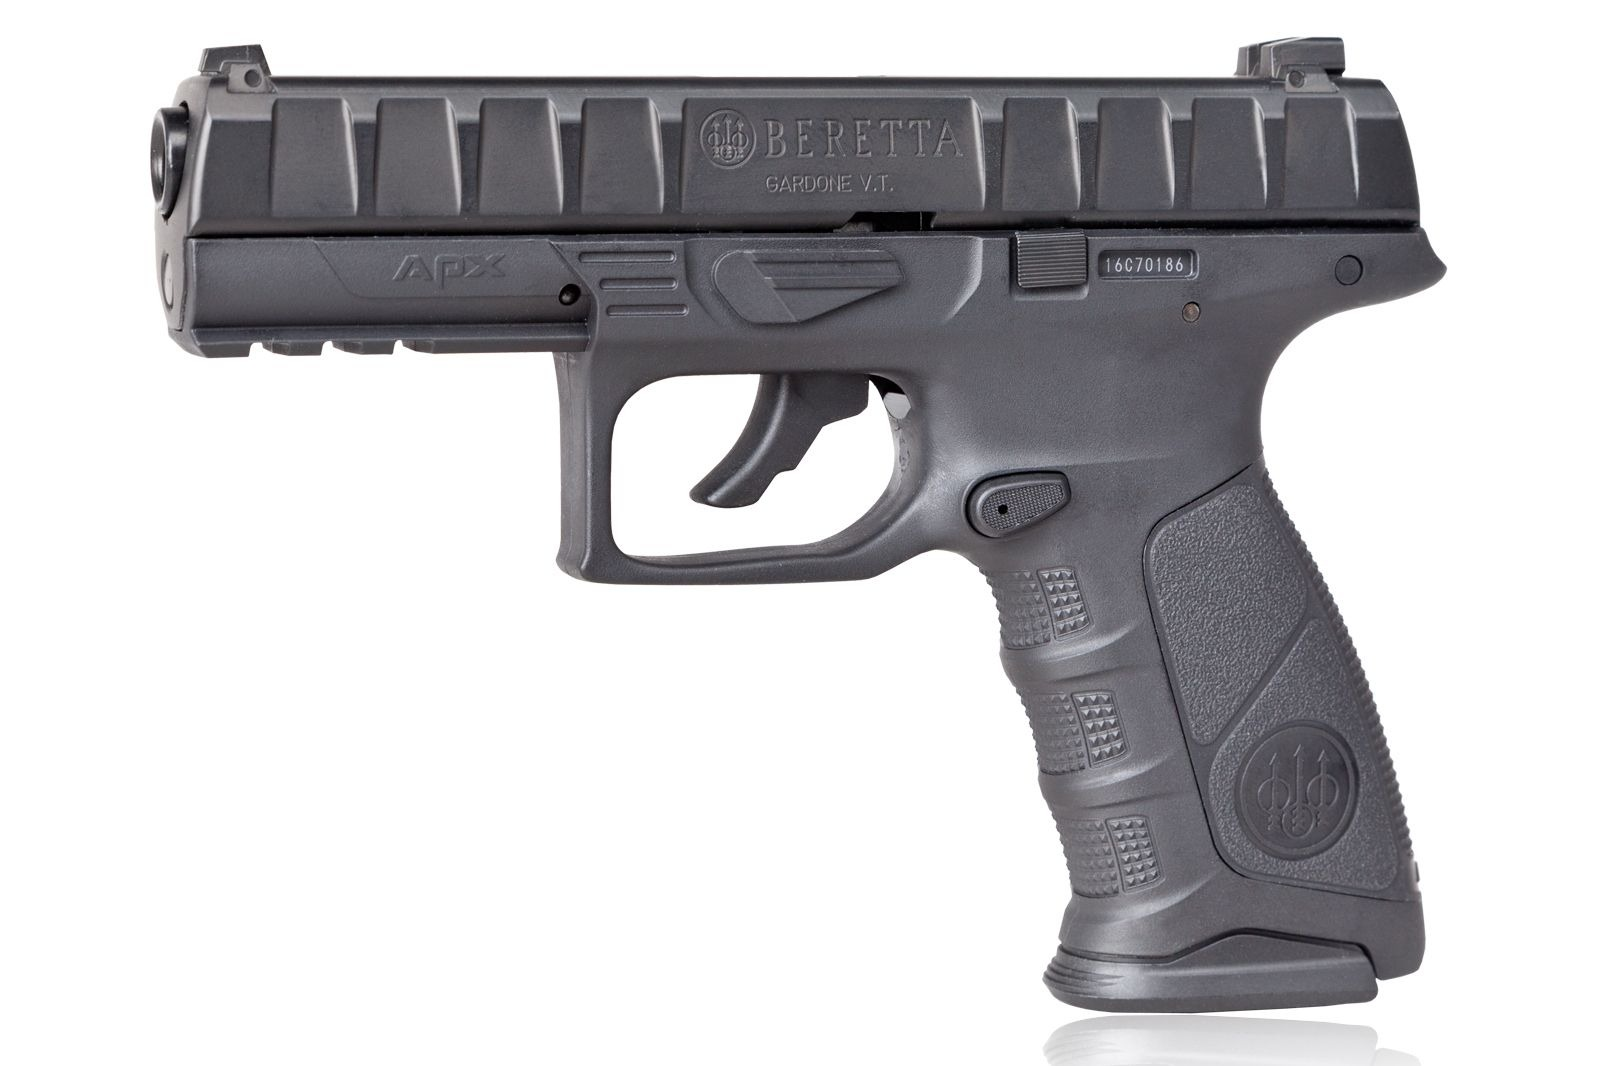 Image of Pistolet asg beretta apx gbb co2